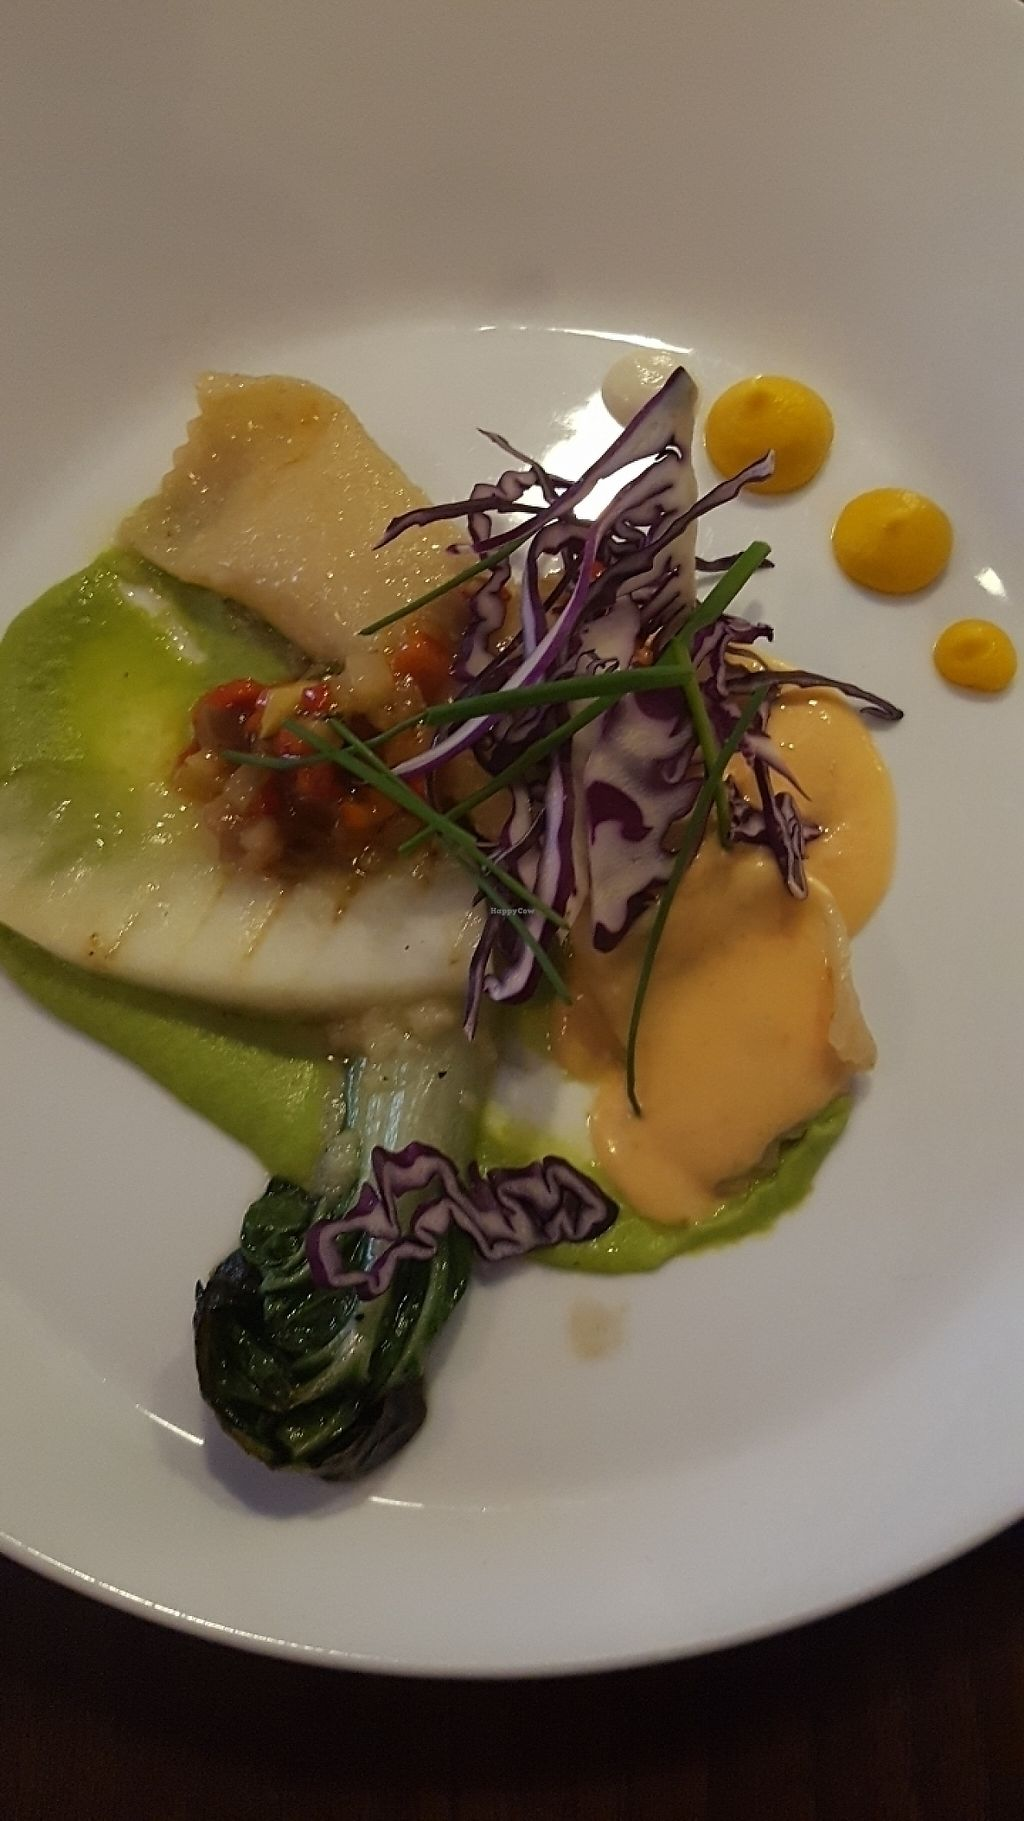 "Photo of Lucky Leek  by <a href=""/members/profile/GarethHailes"">GarethHailes</a> <br/>Ravioli with grilled melon <br/> June 5, 2017  - <a href='/contact/abuse/image/26241/266051'>Report</a>"